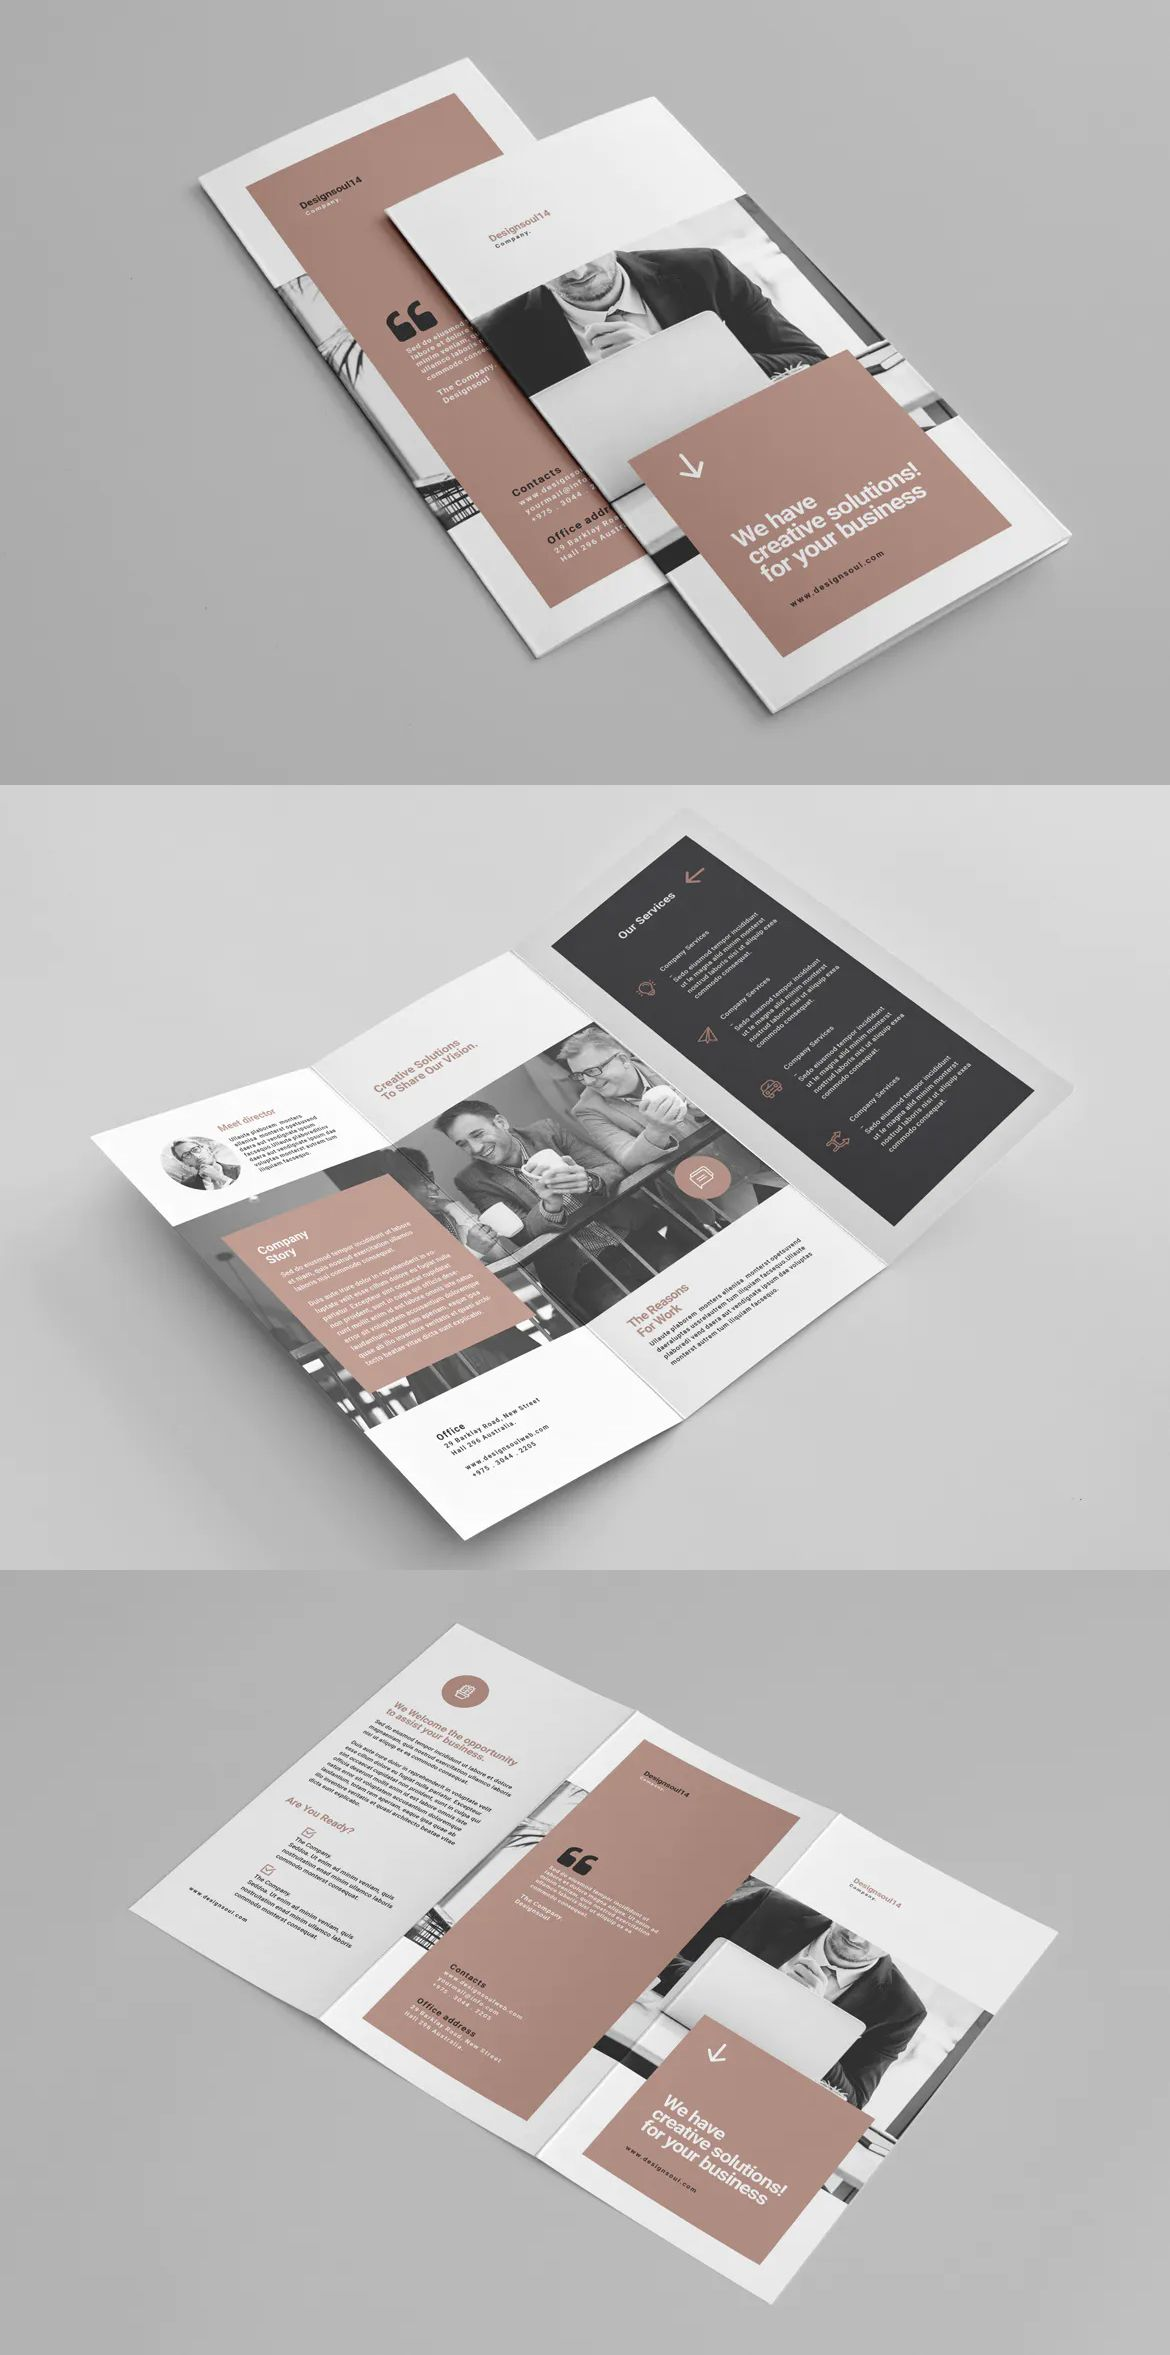 Trifold Brochure Template Indesign In 2020 Trifold Brochure Template Trifold Brochure Design Trifold Brochure